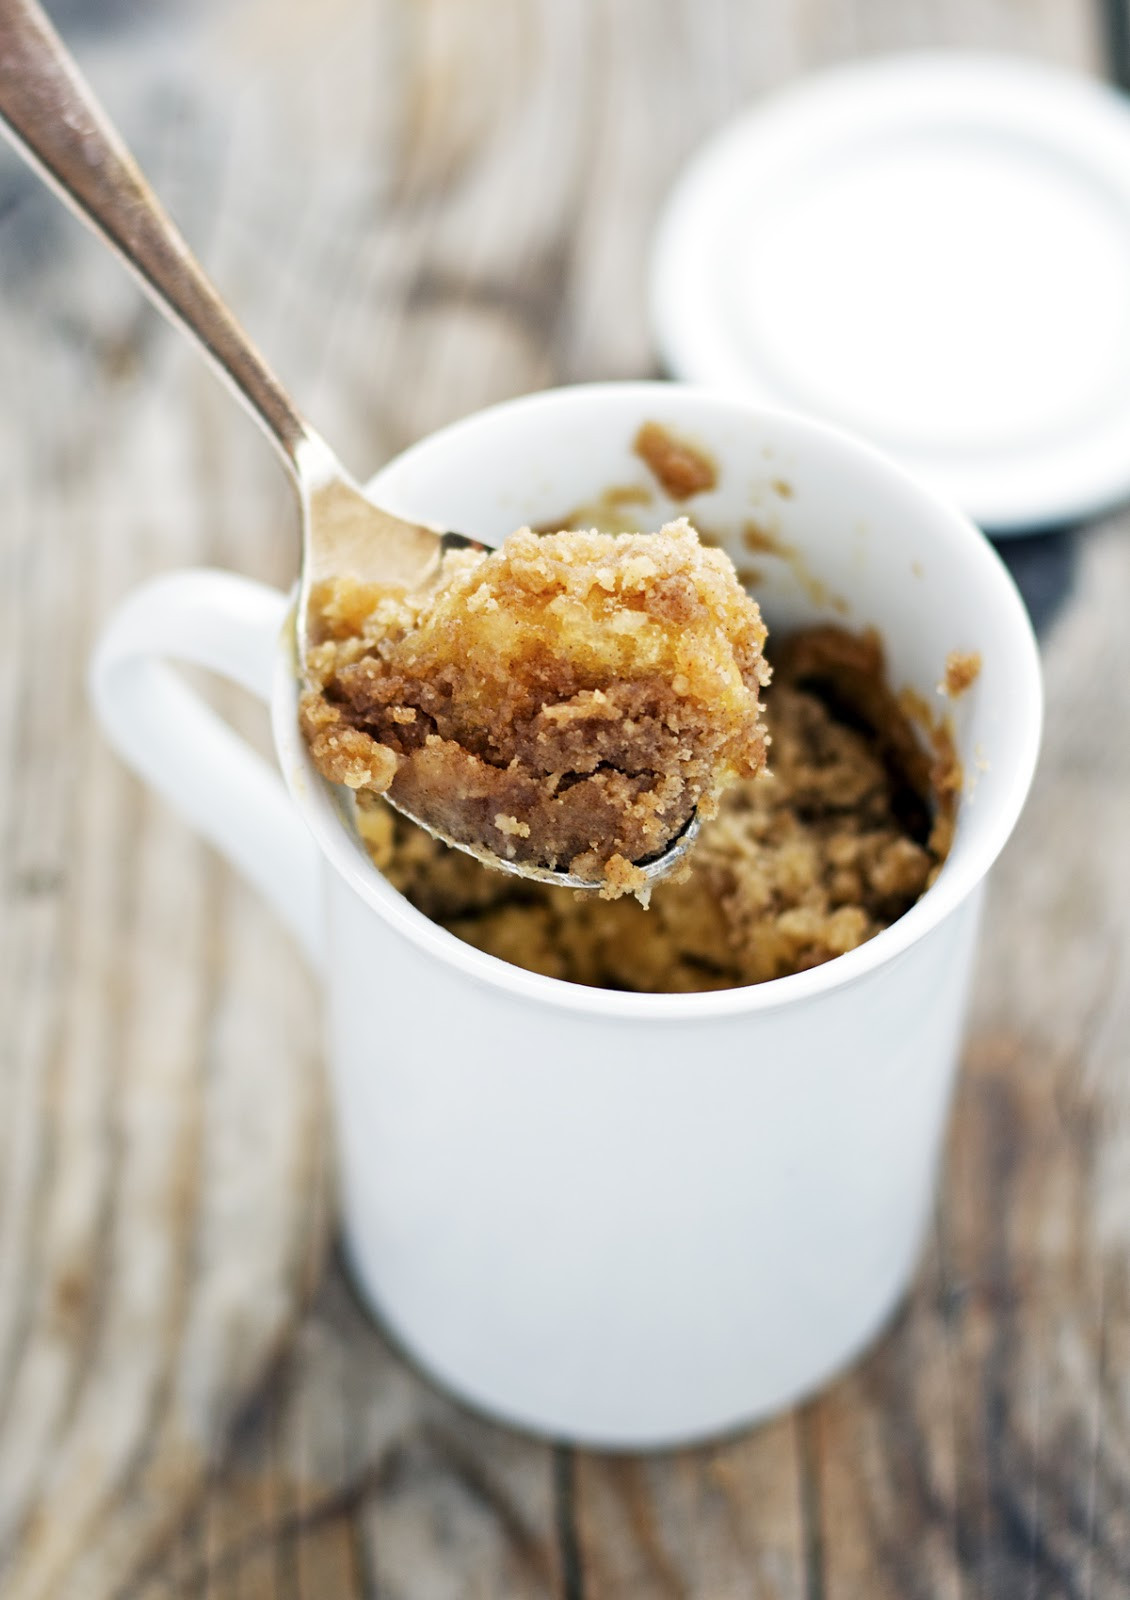 (5-Minute) Cinnamon Streusel Coffeecake in a Mug